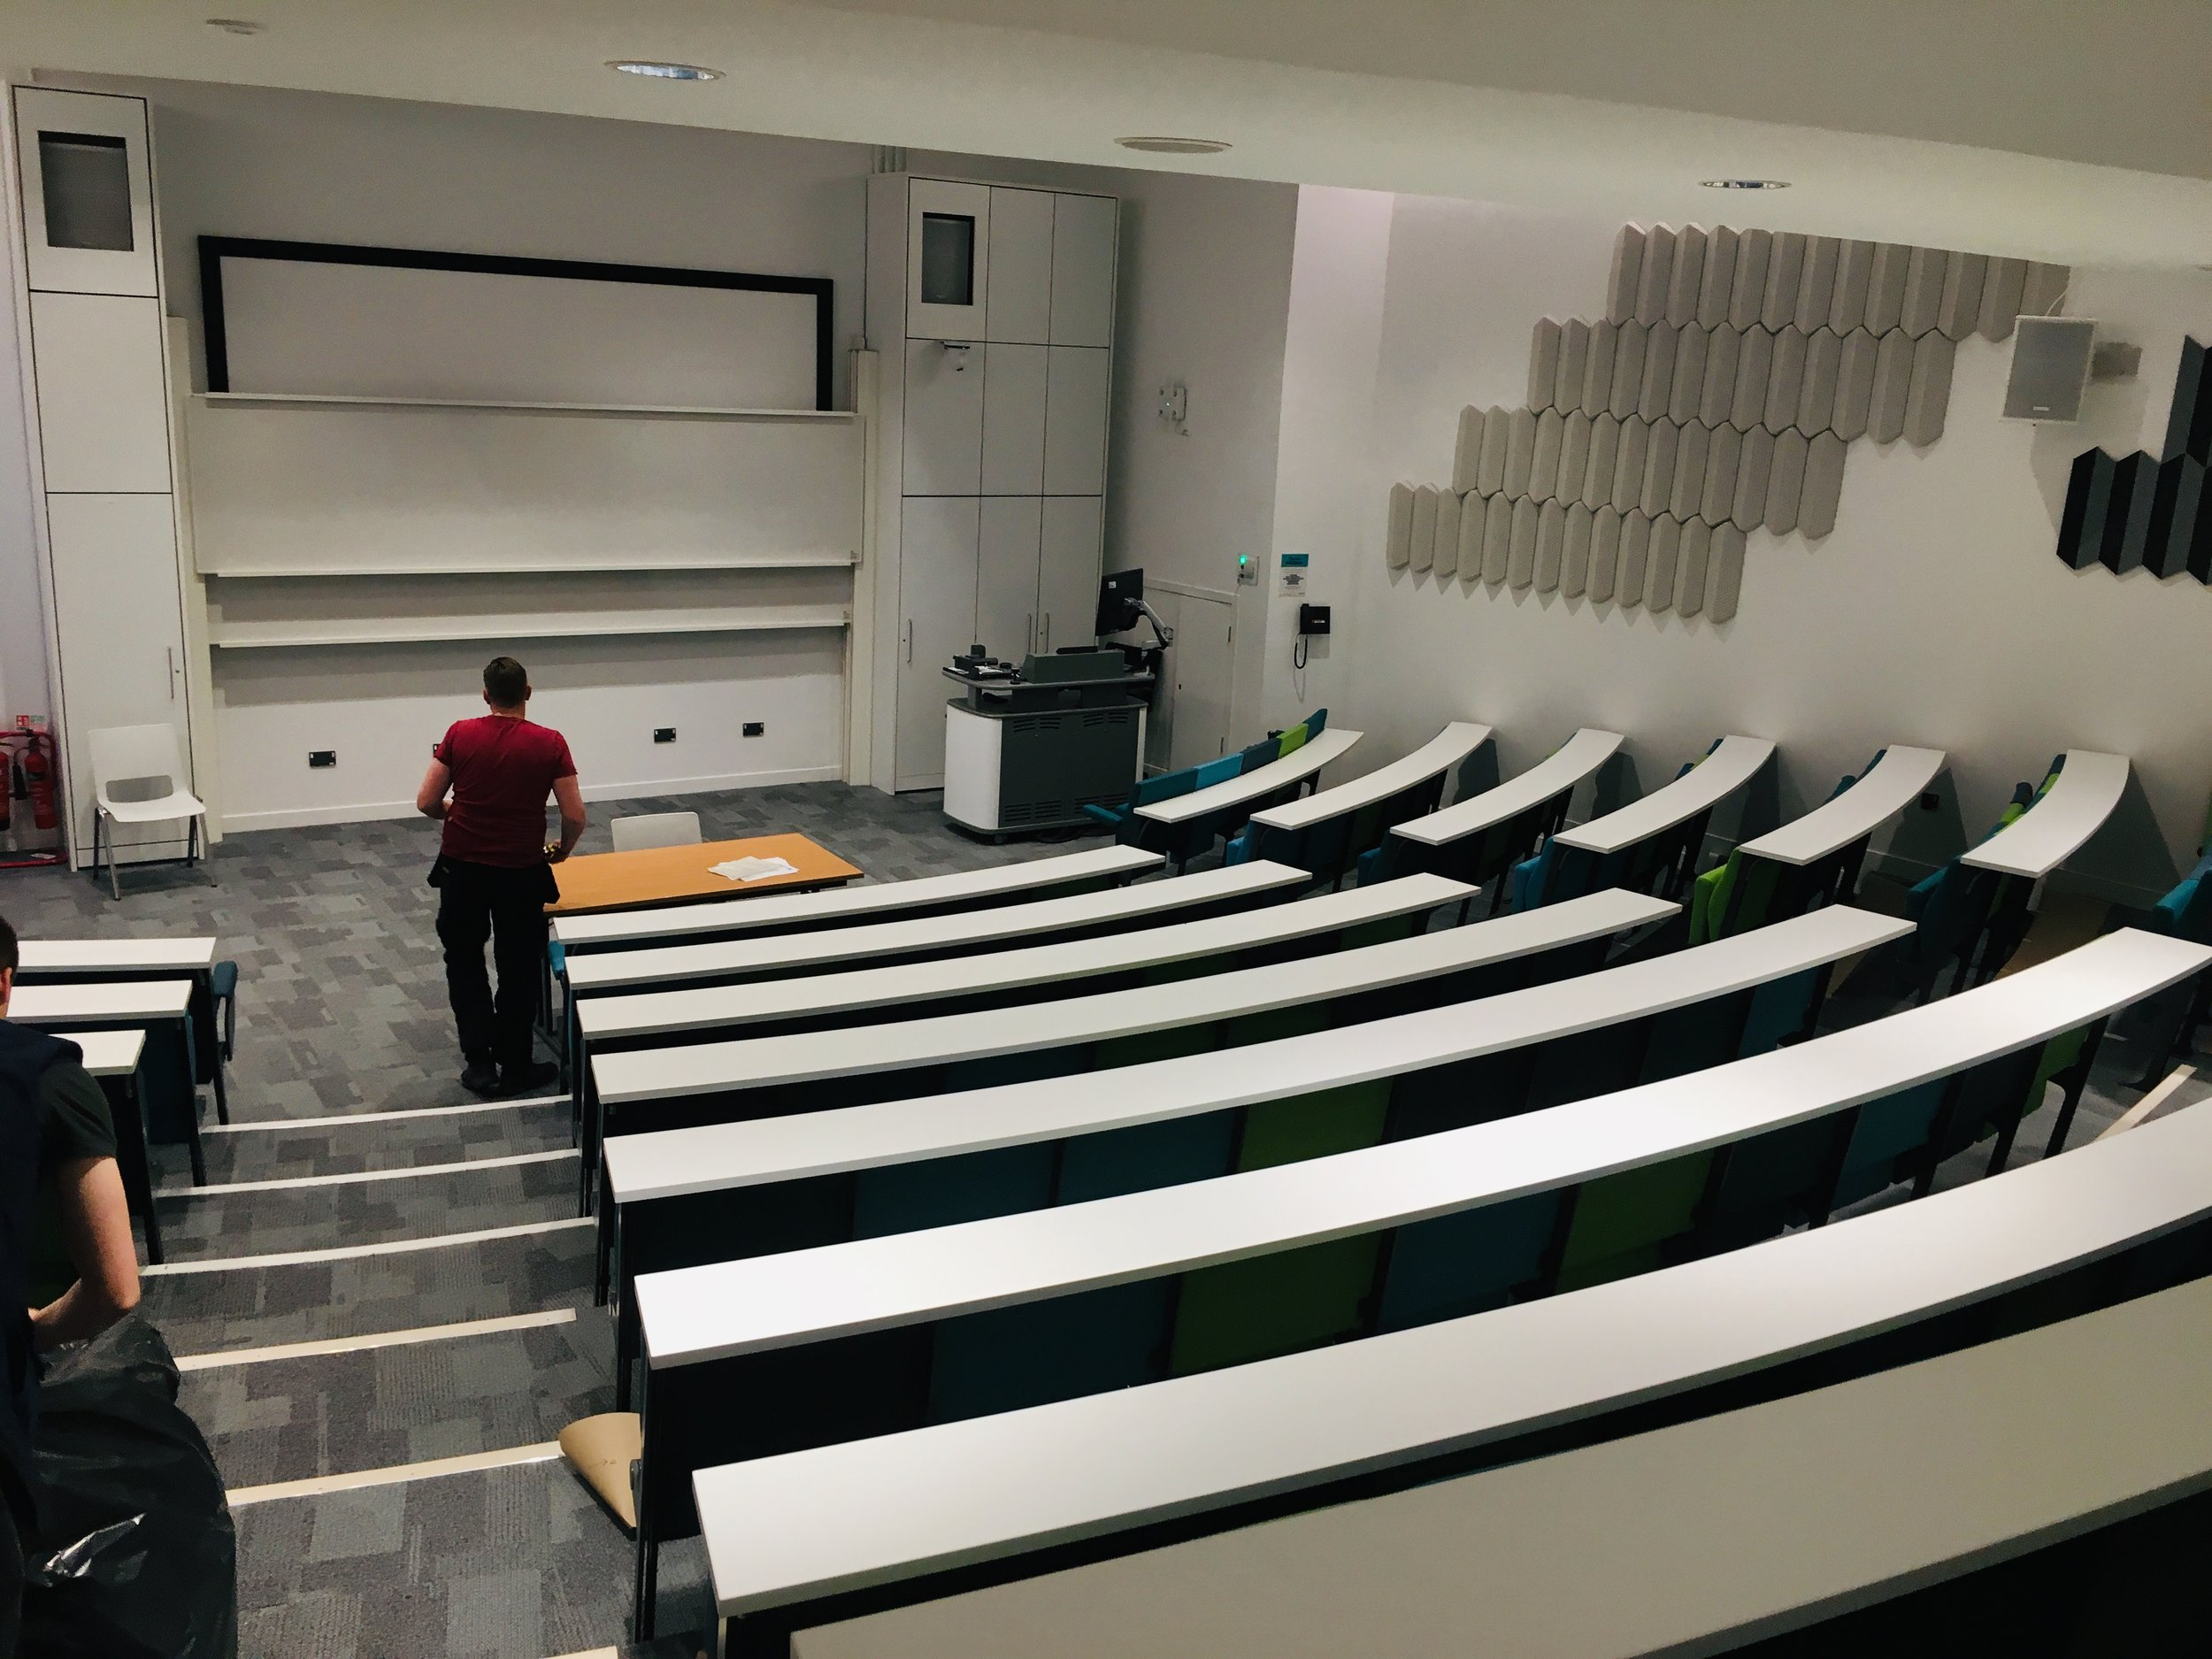 Lecture Hall/Cinema